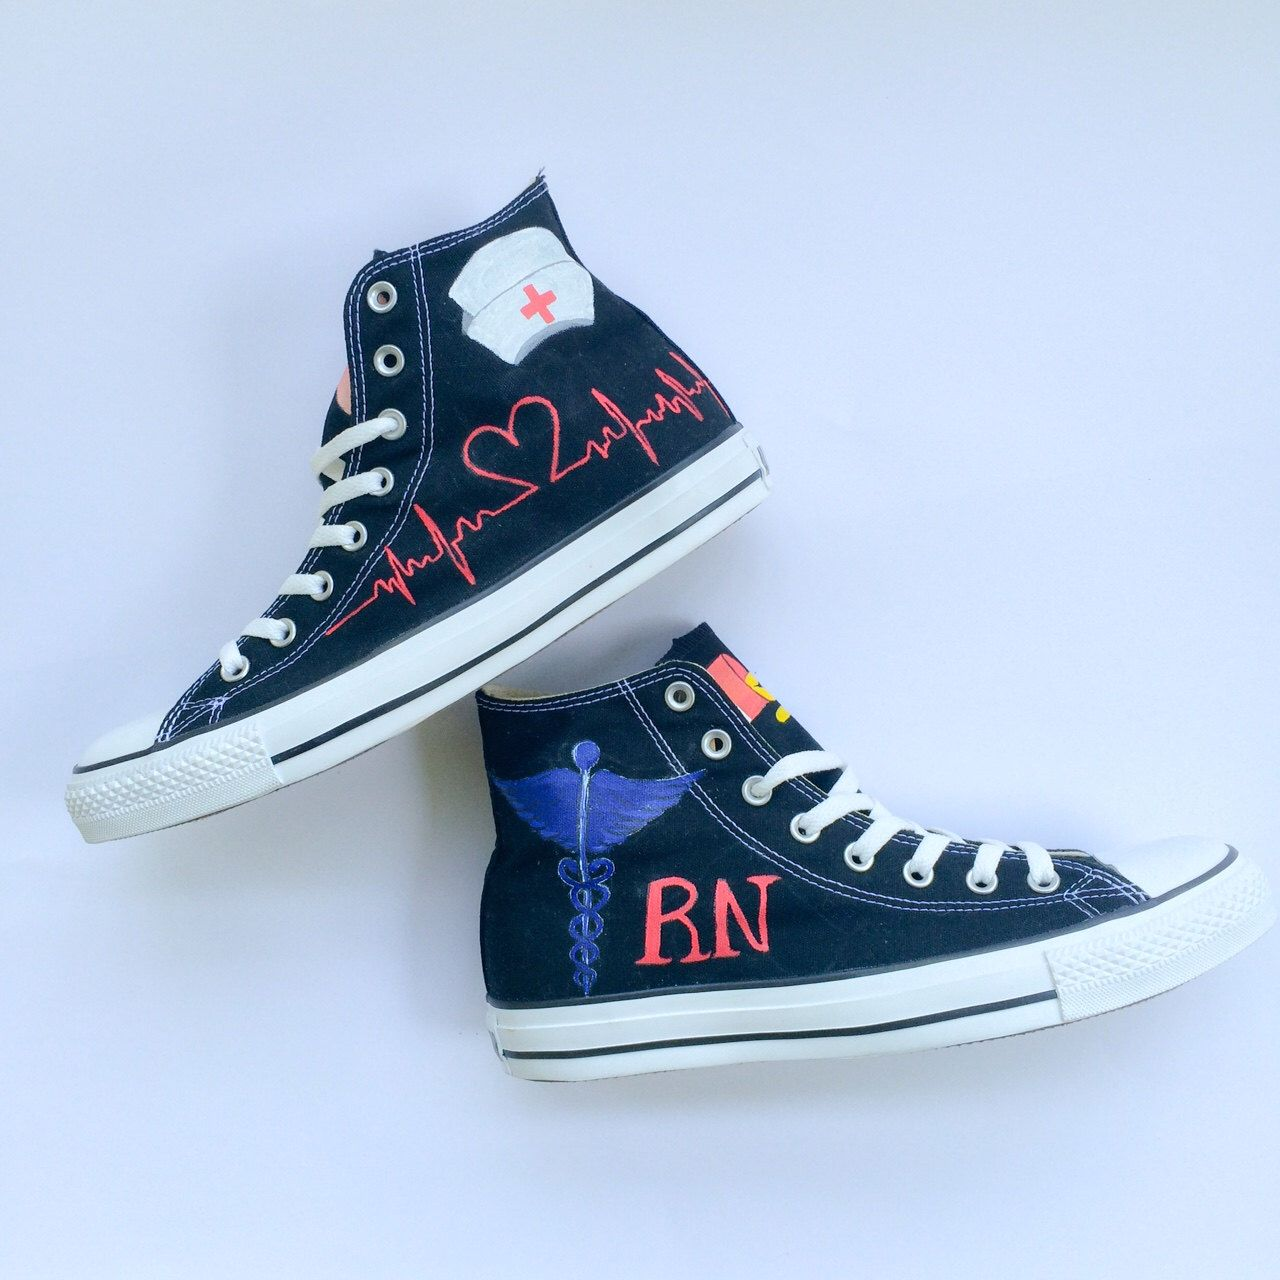 960dce452dbee9 Custom Hand Painted Nurse or Doctor Converse by IntellexualDesign on Etsy  https   www